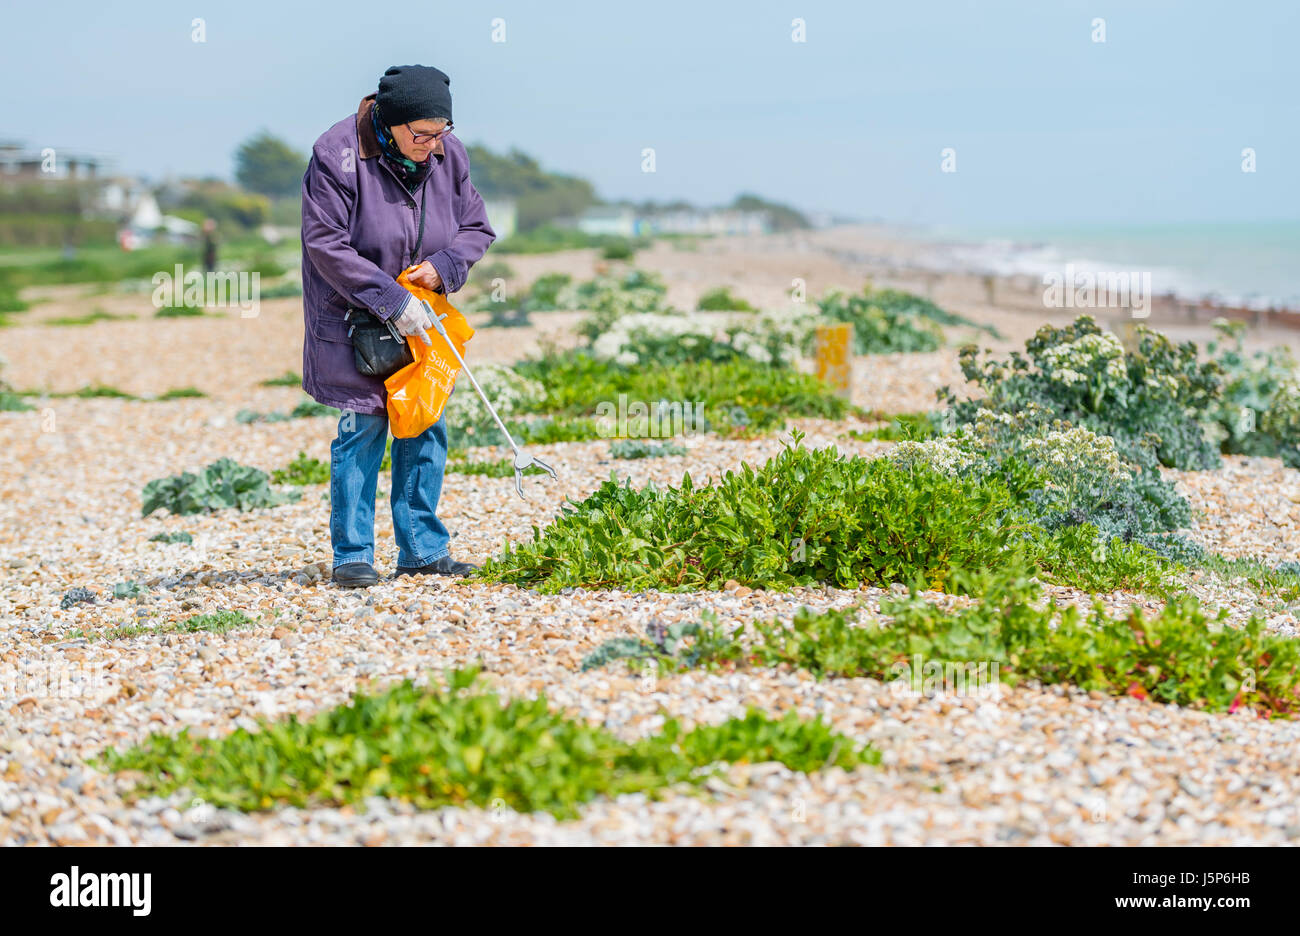 Elderly lady being community spirited by cleaning up the litter people have left behind on the beach. - Stock Image